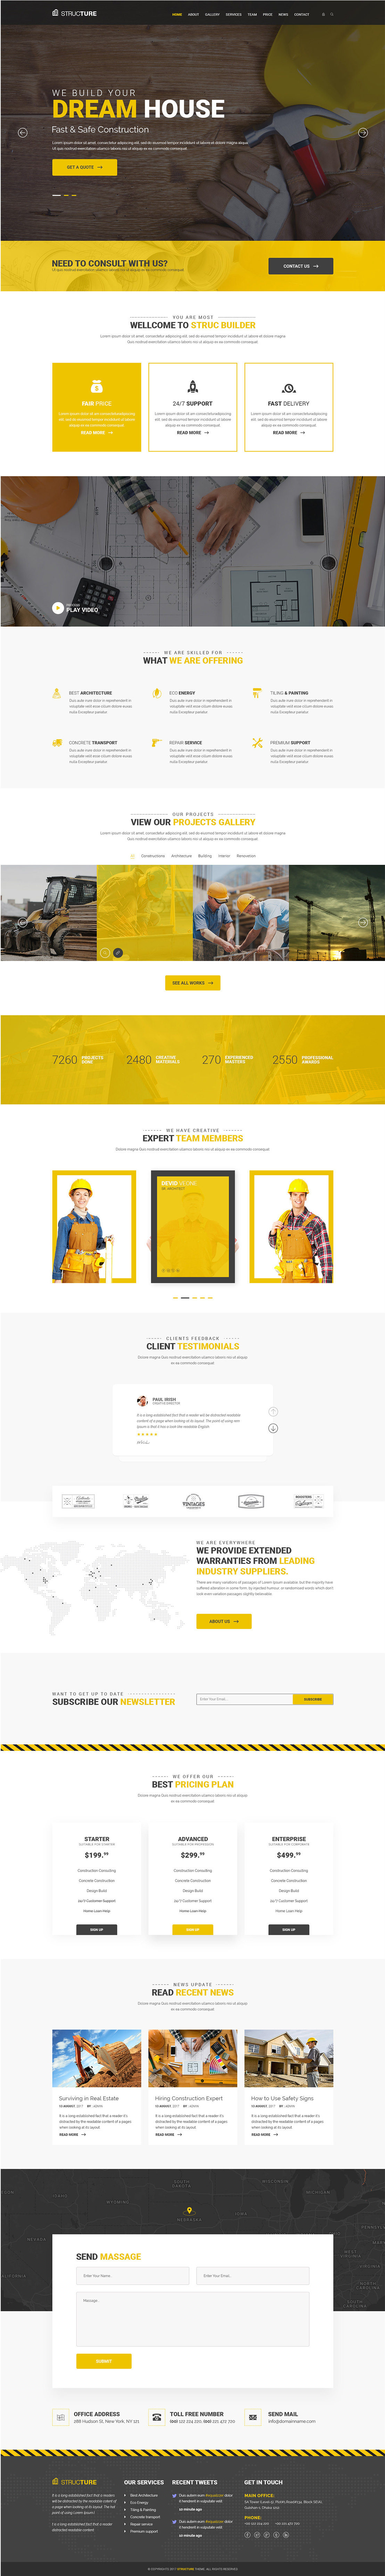 Structure Construction Website PSD Template